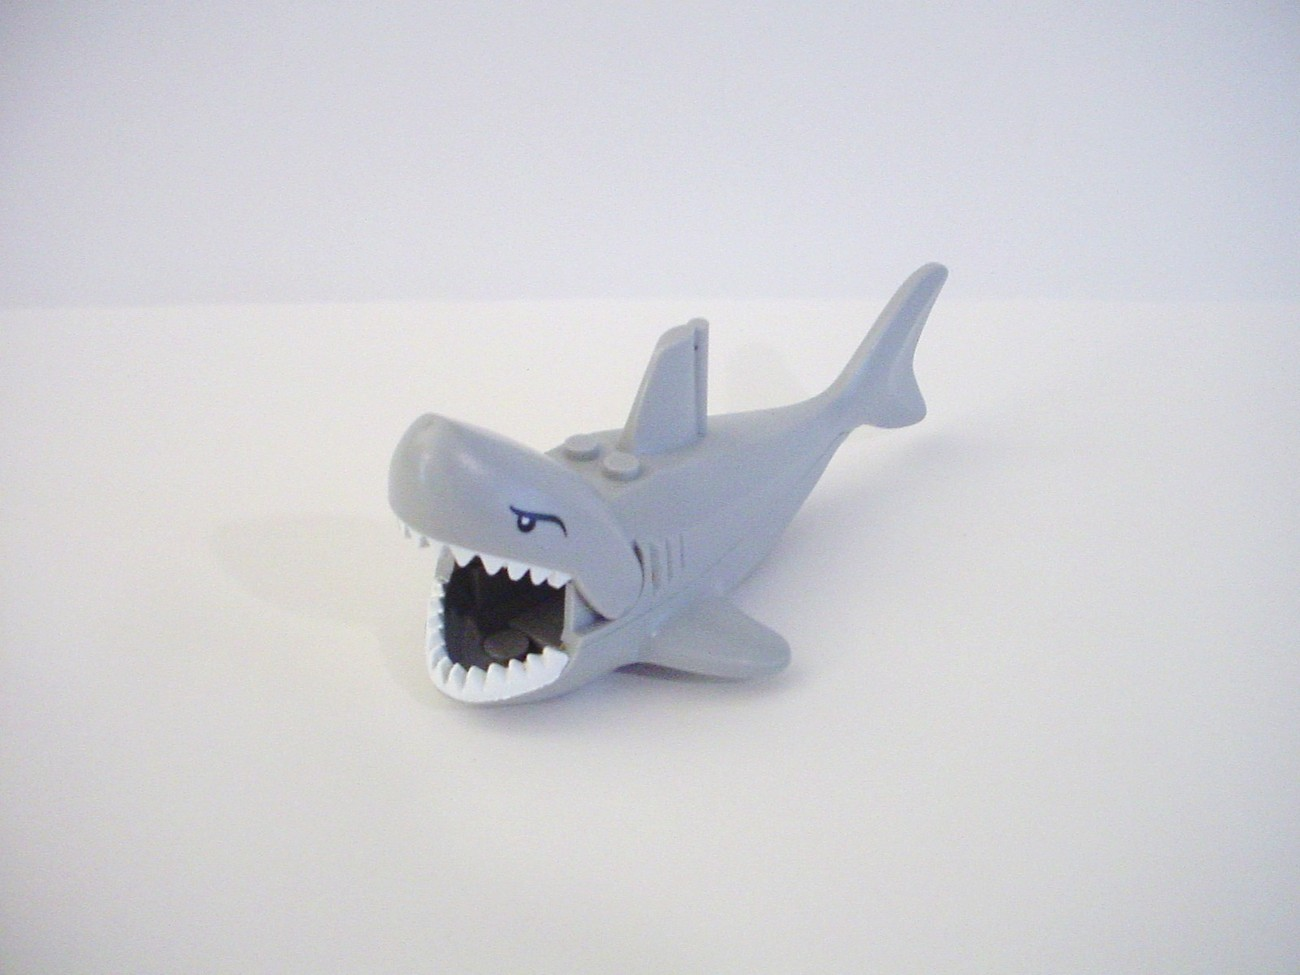 Lego Minifig 5 inch Long Shark Large Mouth and Teeth - LEGO